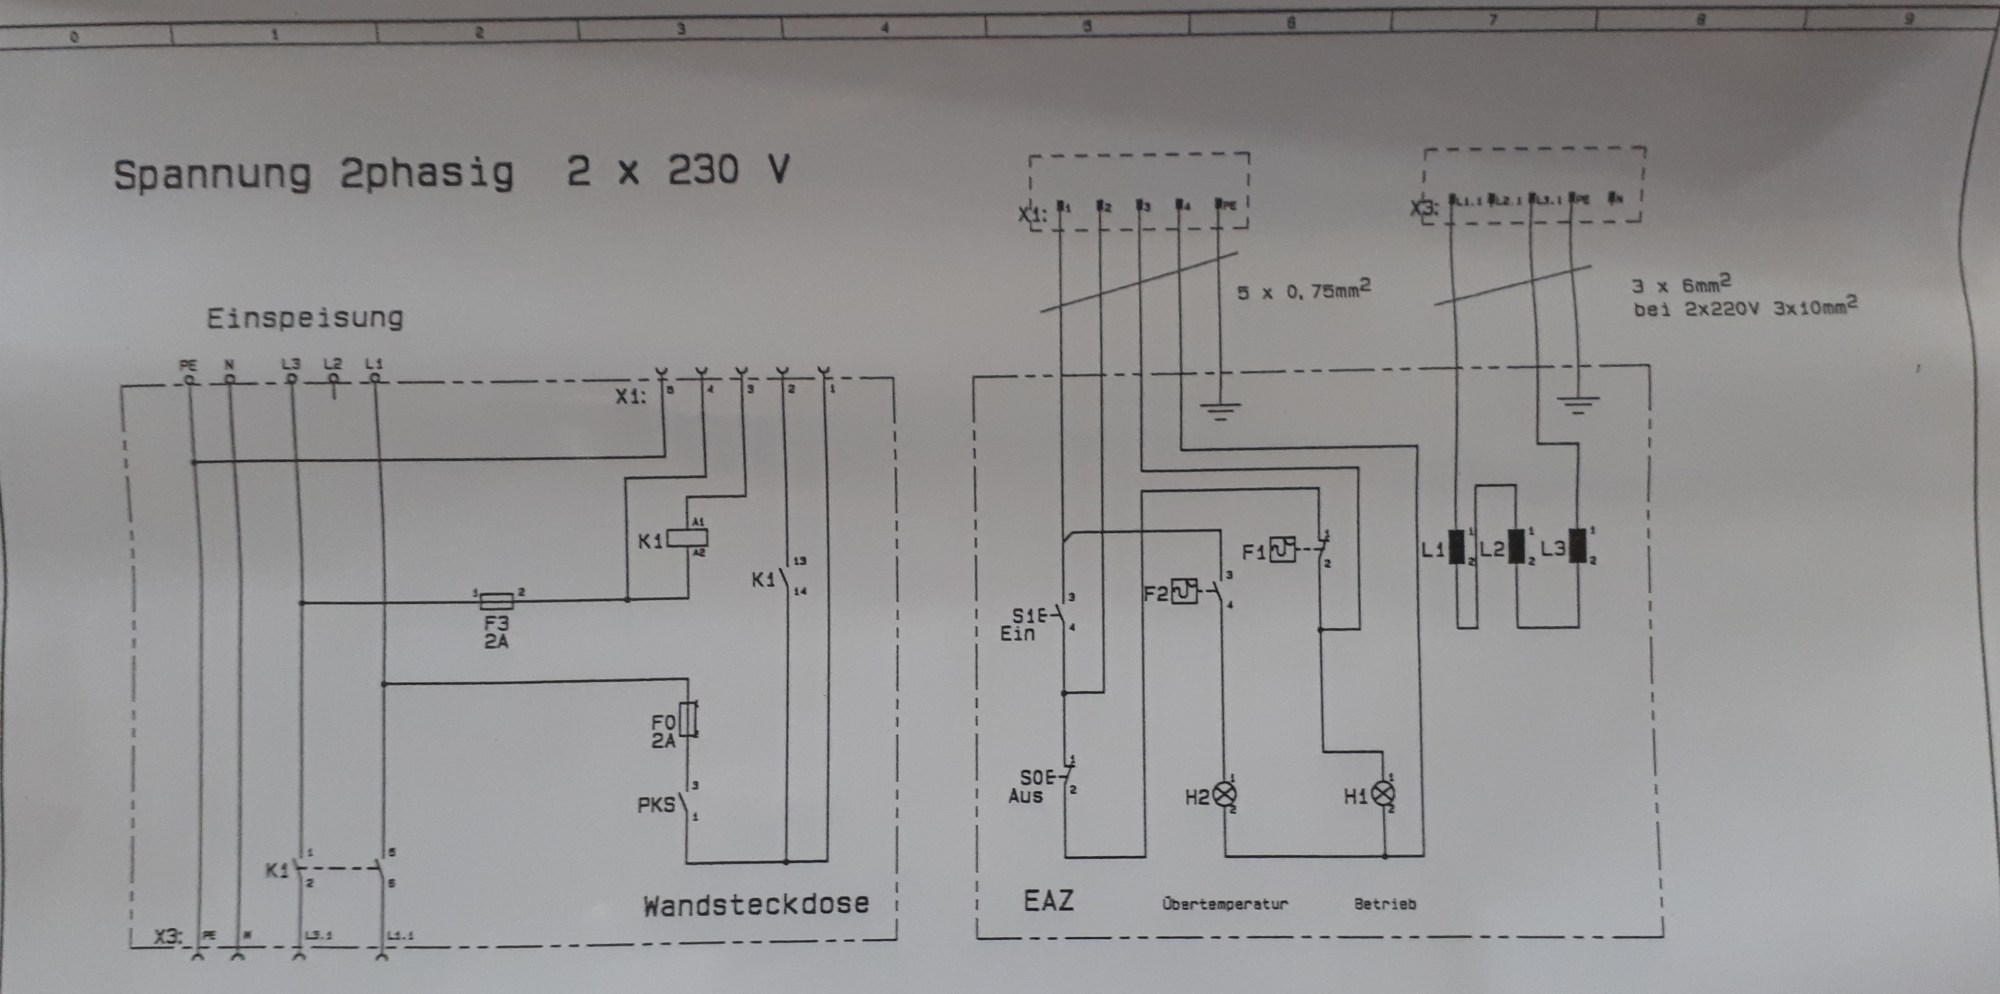 hight resolution of 3 phase 380 v to 3 phase 230 v electrical engineering stack exchange 220 volt 3 phase motor wiring diagram phase 220 volt wiring diagram